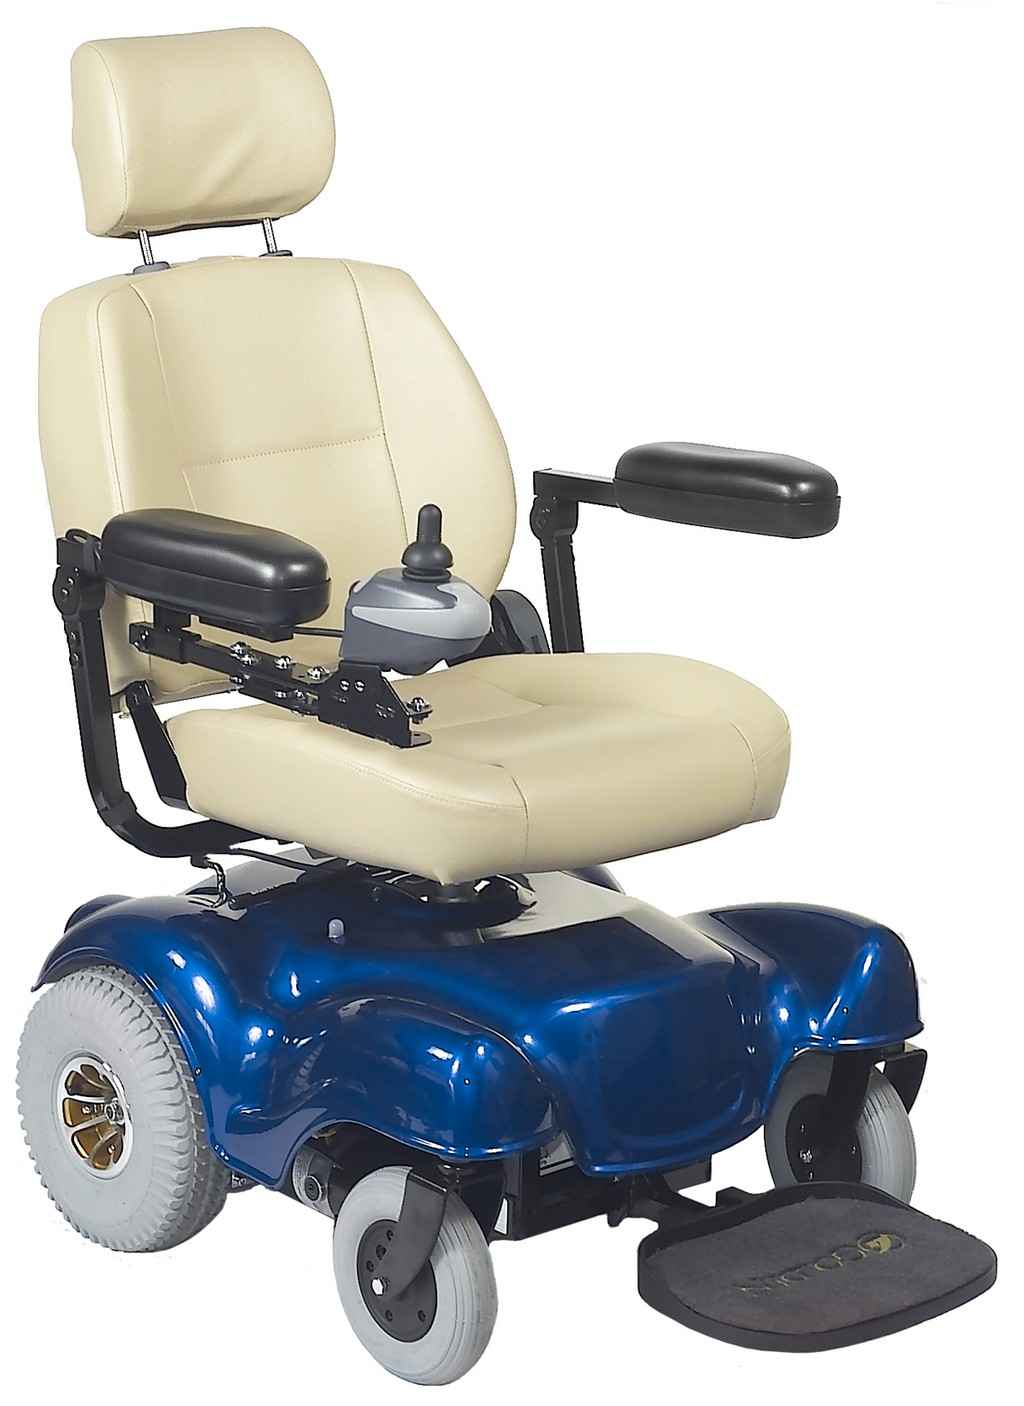 primo tires for power wheelchairs, power wheelchair repair nj, power electric wheelchair, estimate value of power wheelchair